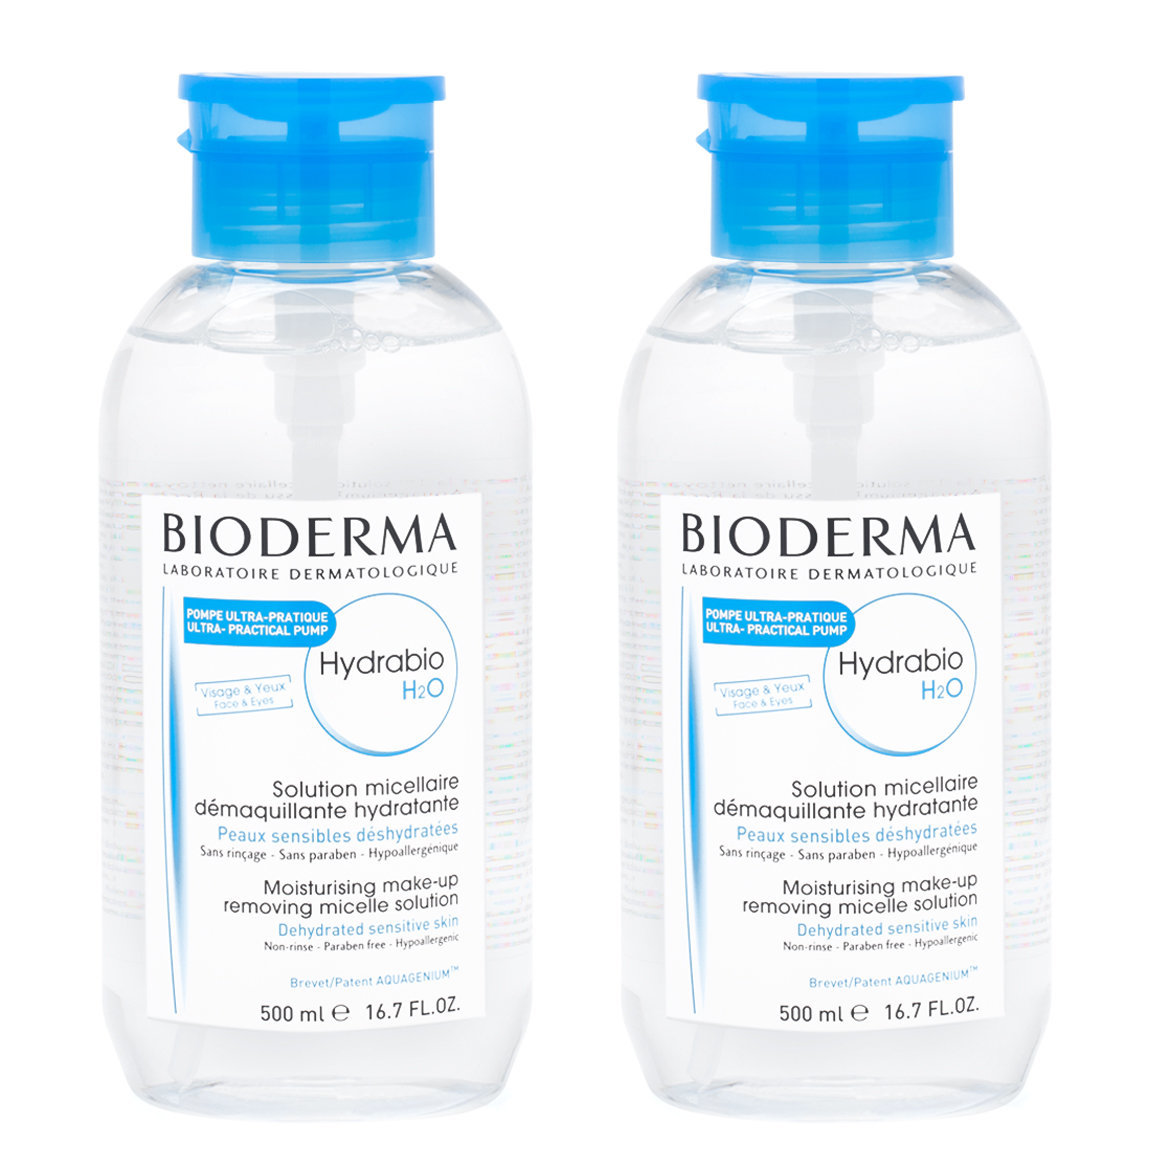 Bioderma Hydrabio H2O Pump 500 ml Duo product smear.